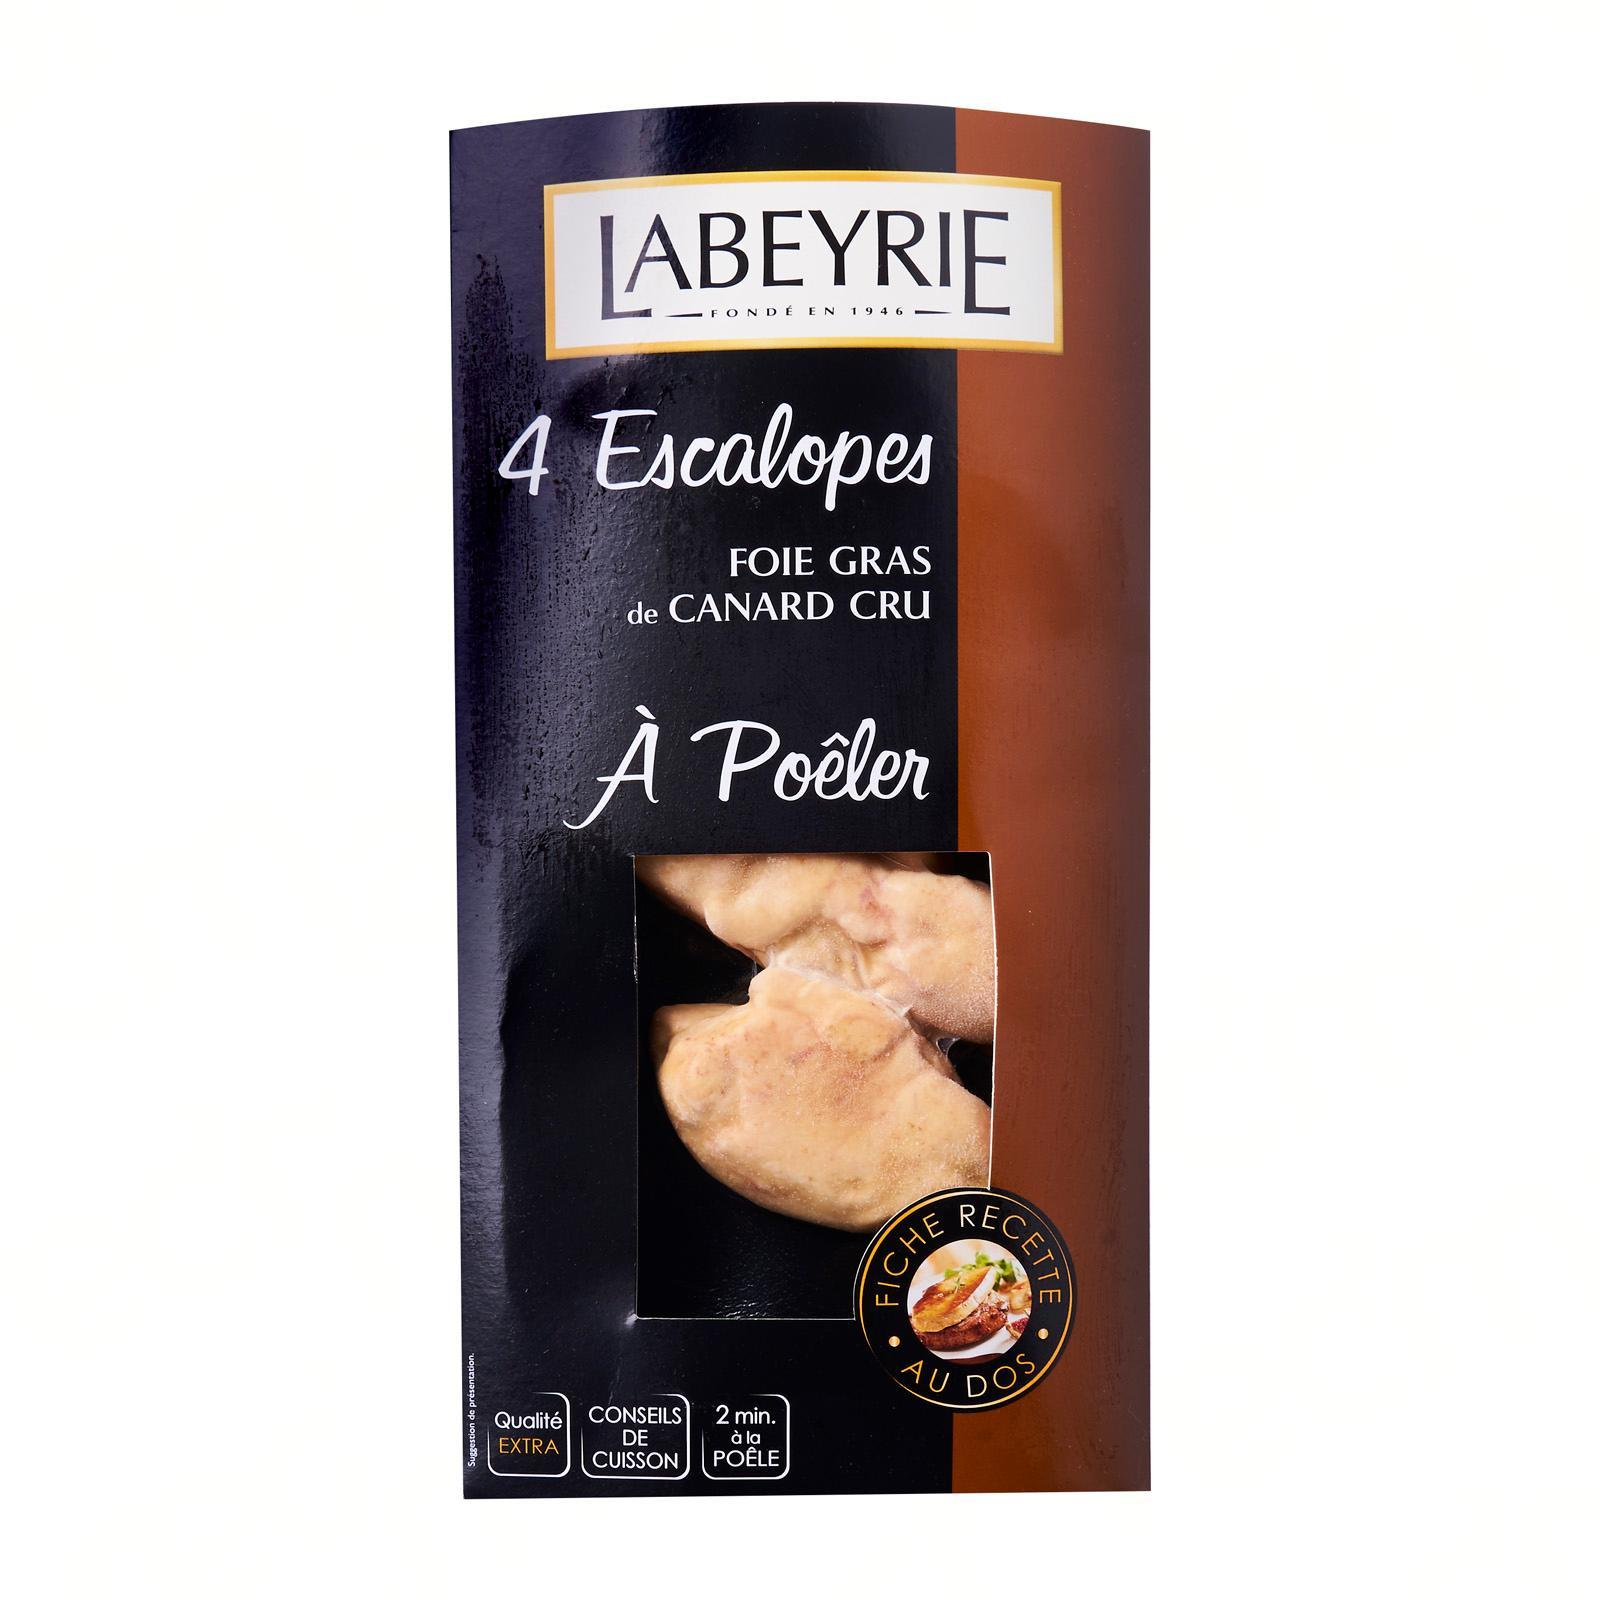 Labeyrie 4 Escalopes For Pan Fry